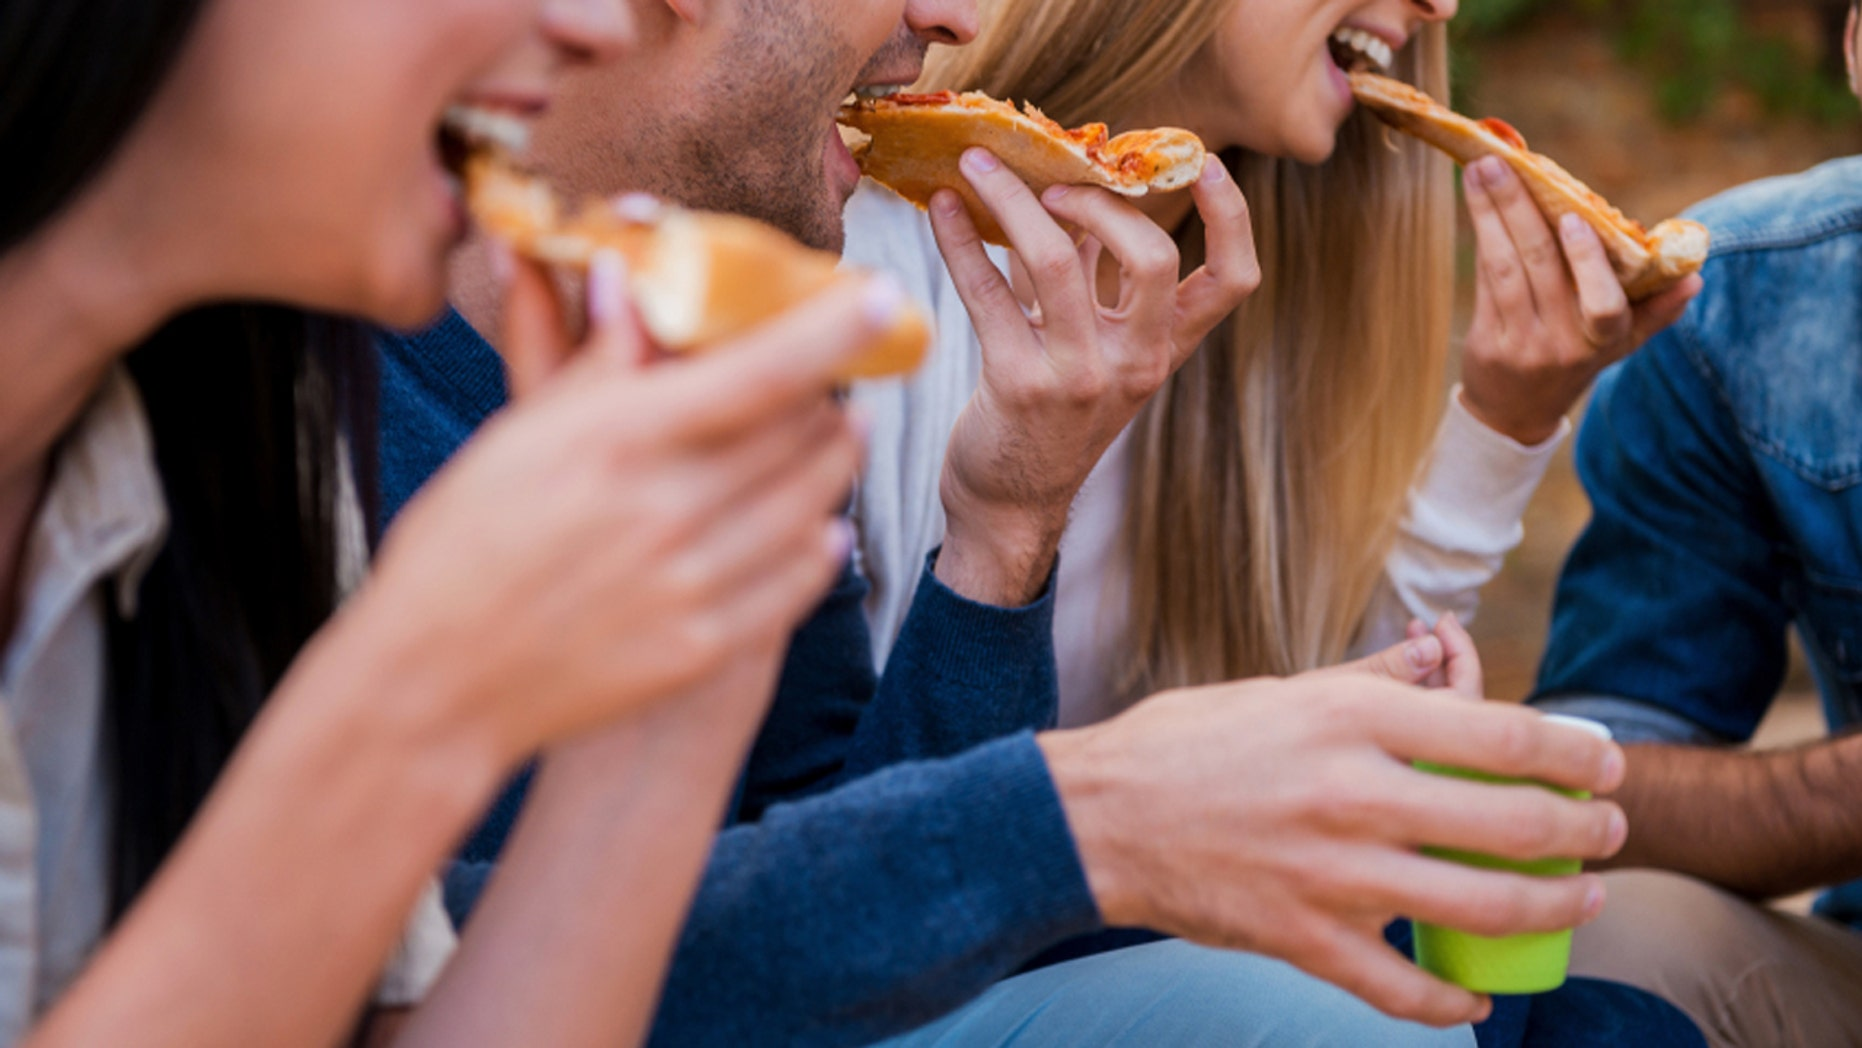 Men eat more when they dine out with women.